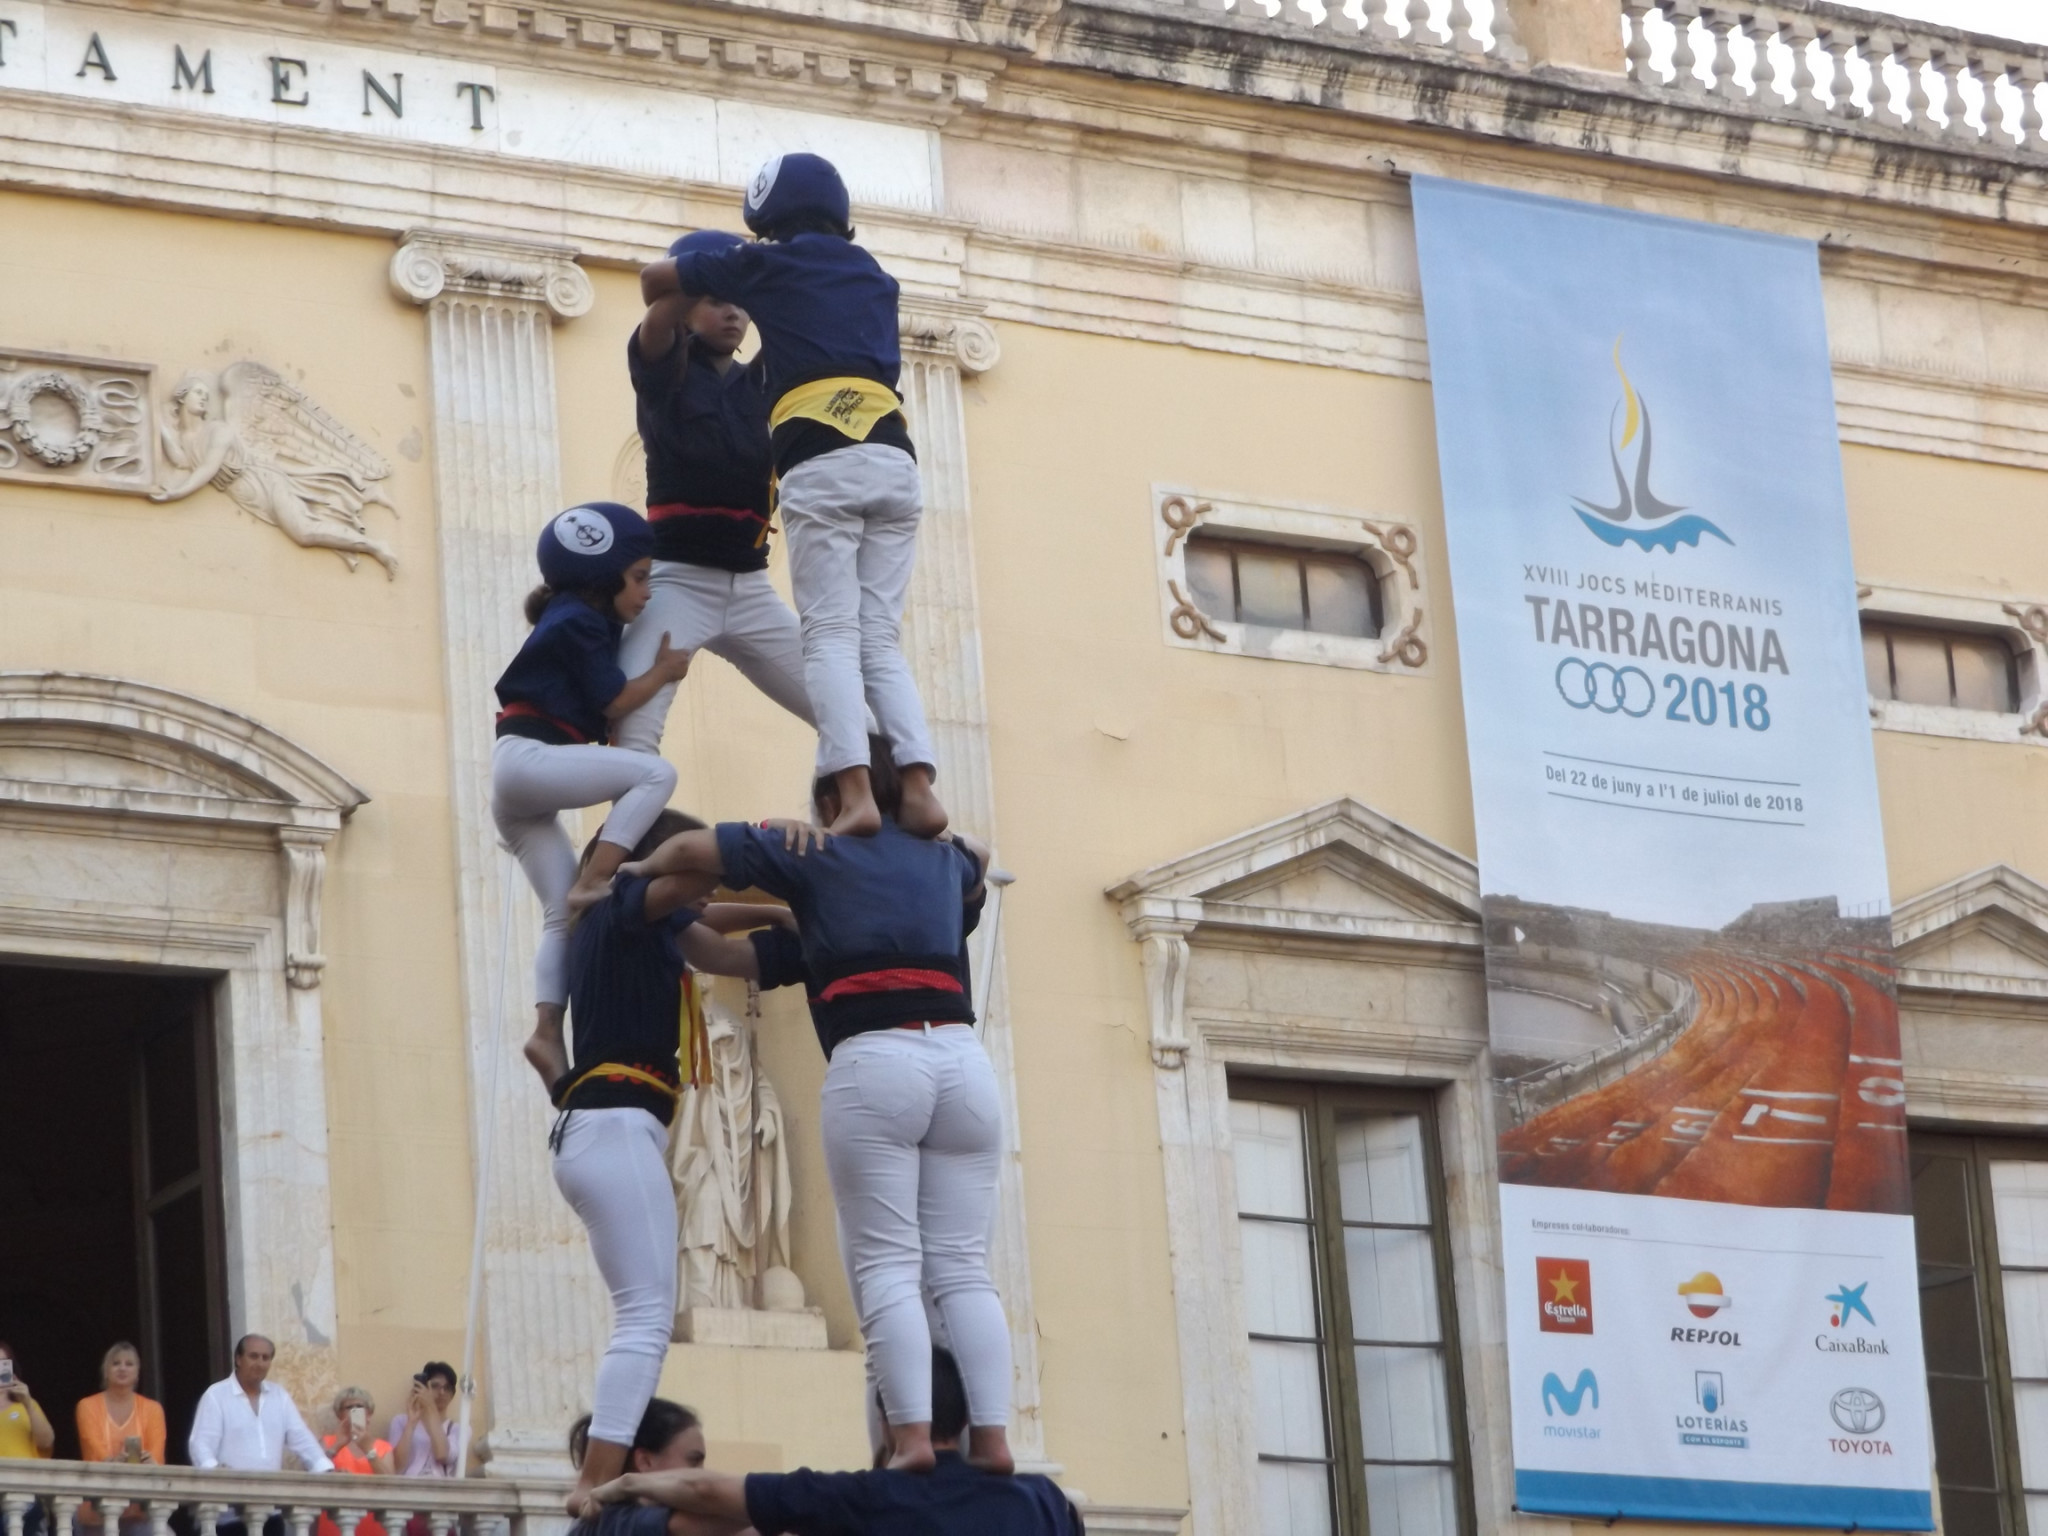 Traditional climbing part of cultural events at Mediterranean Games